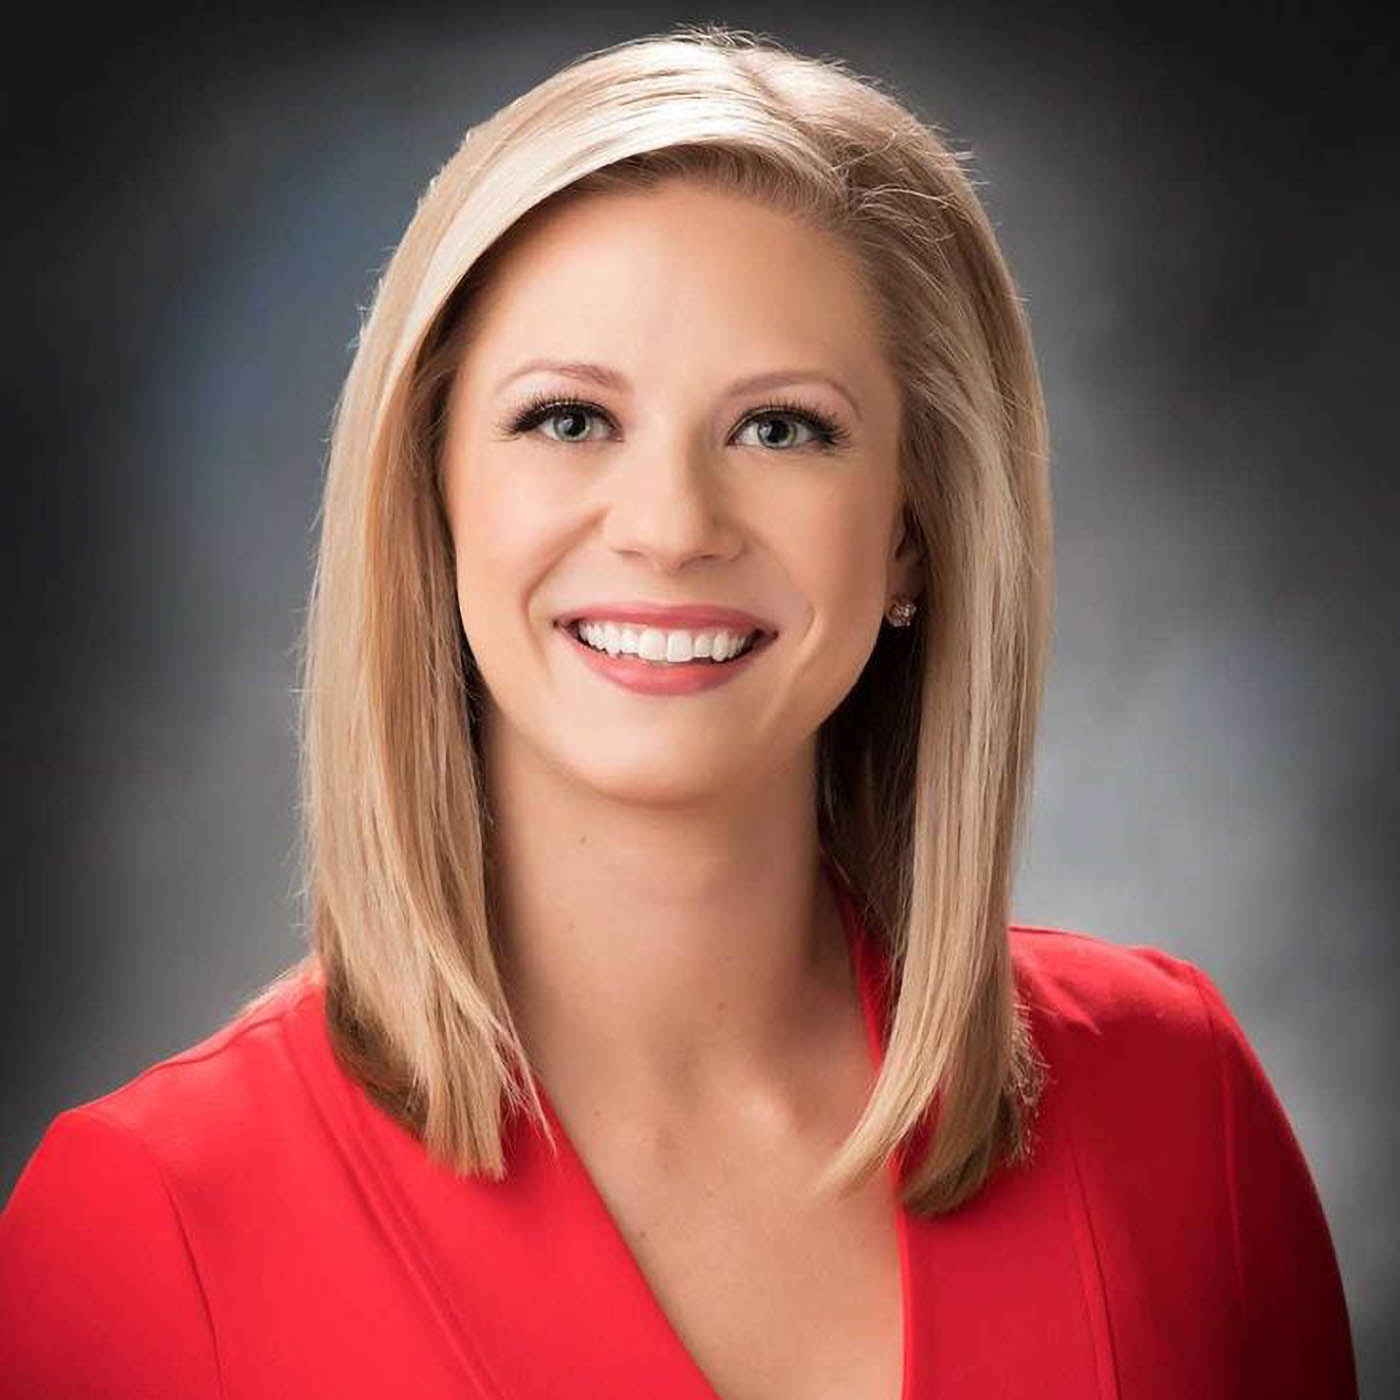 Kate McKenna services for WAAY 31 News